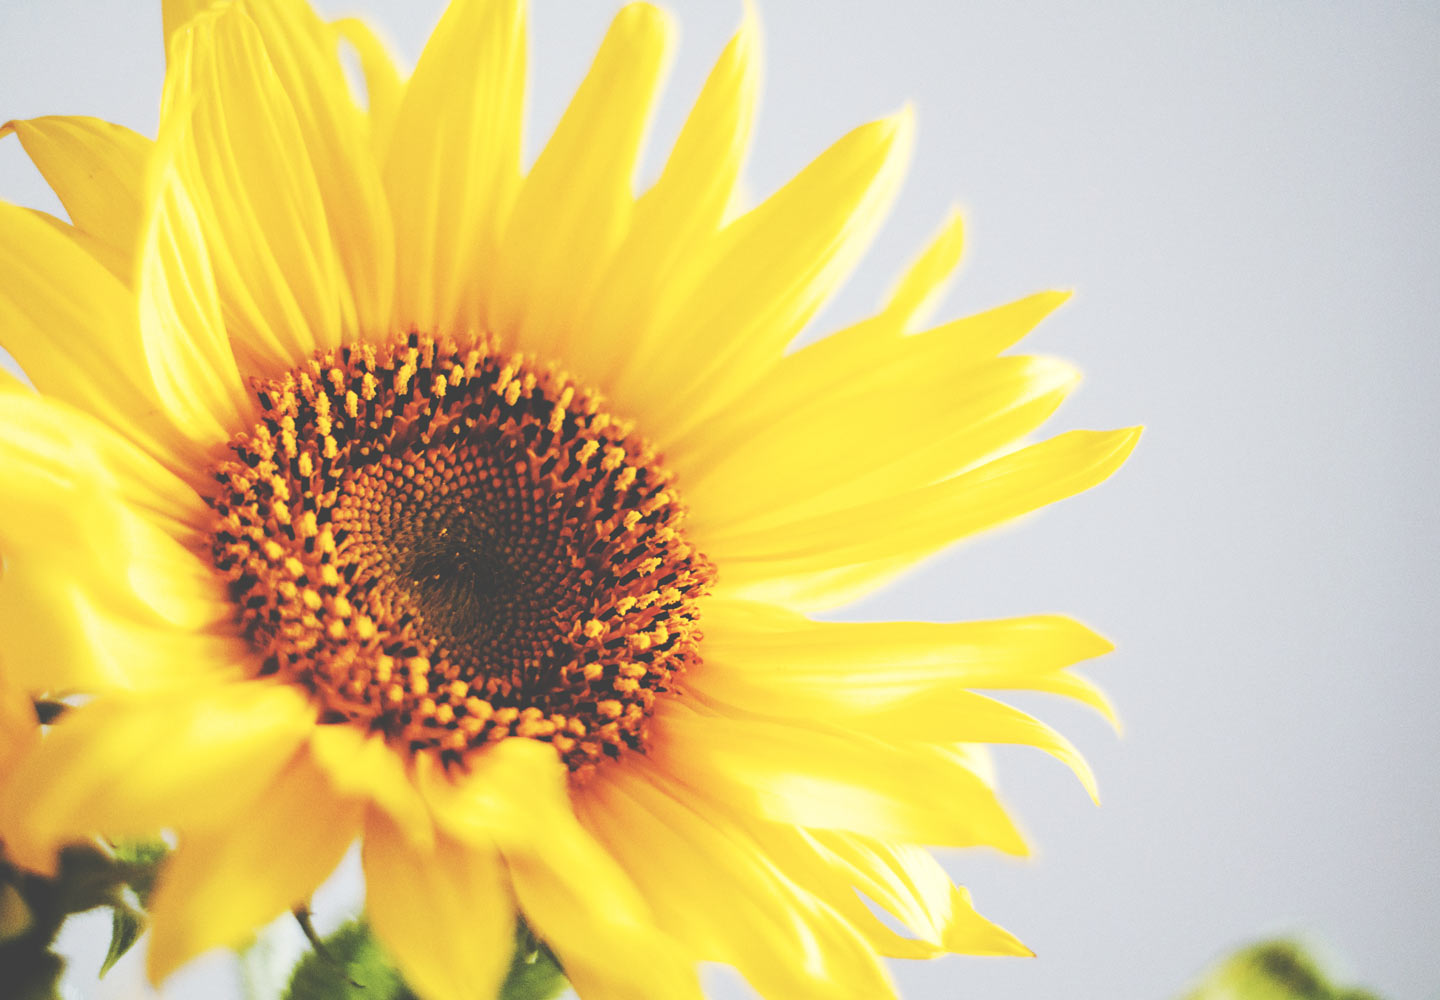 The Life Cycle of a Sunflower | When Do Sunflowers Bloom? - FTD.com